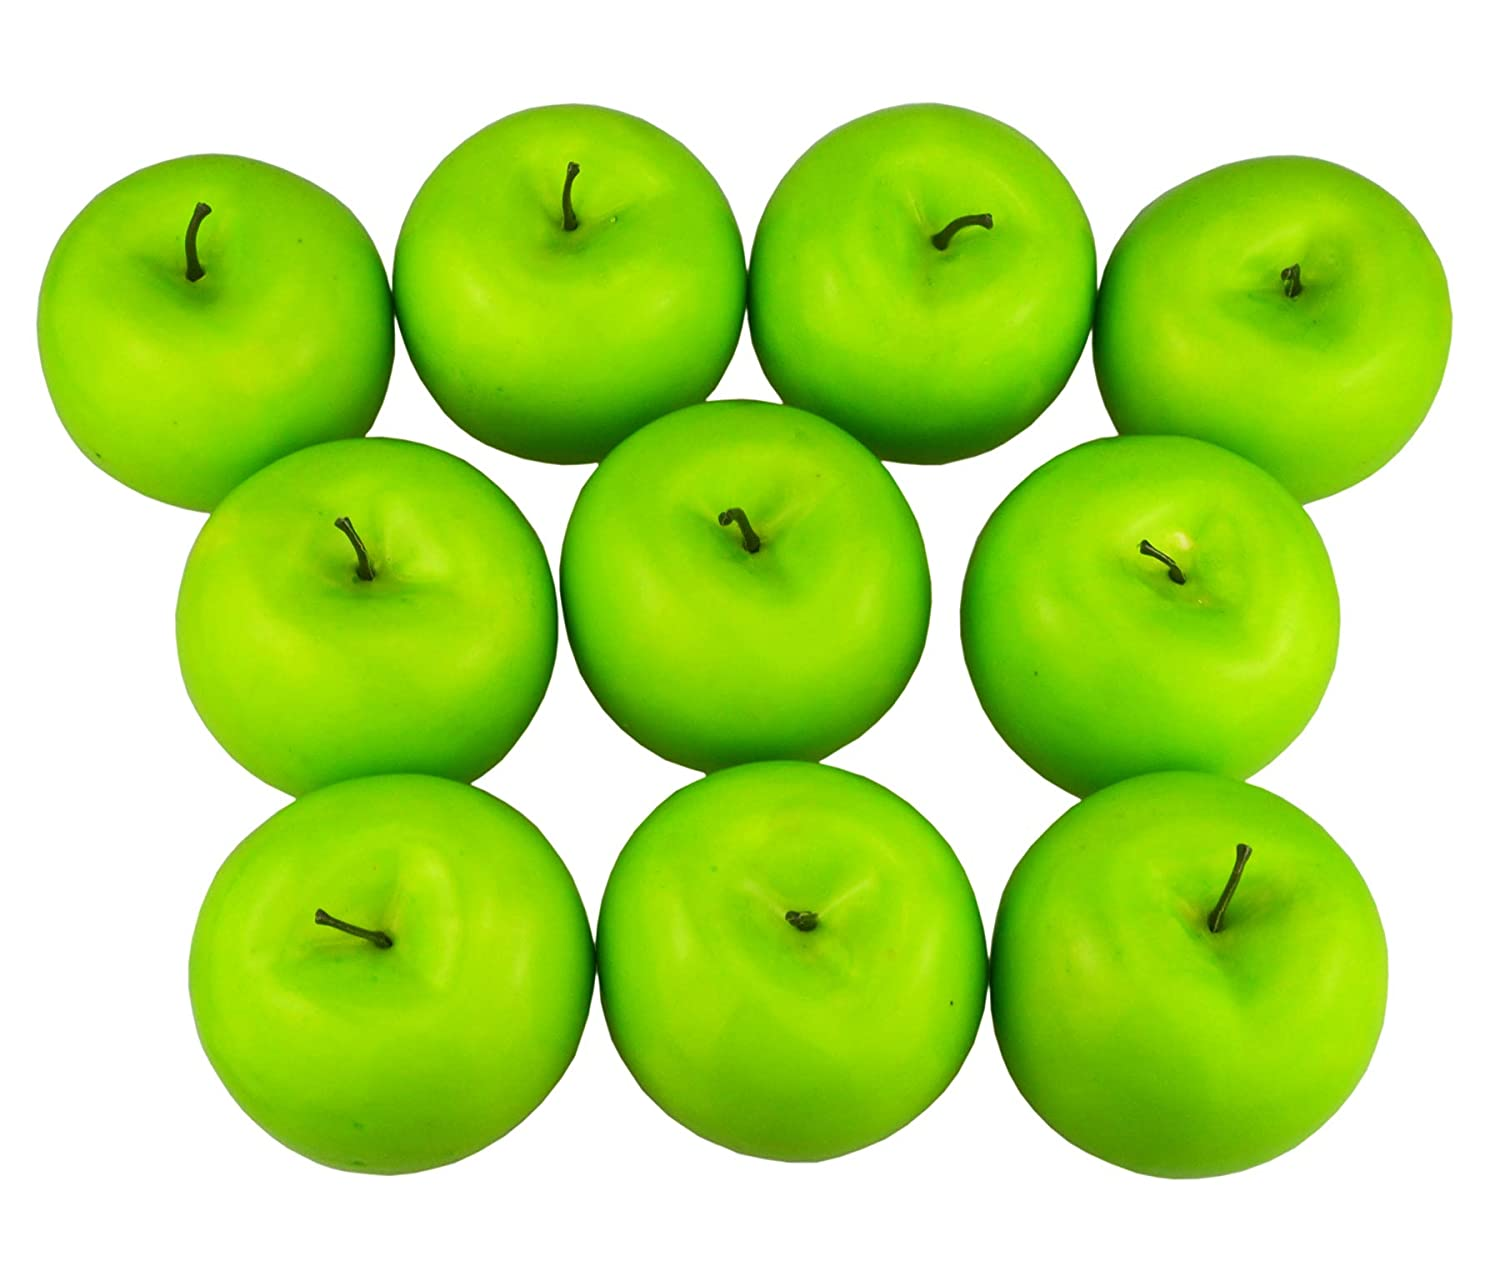 JEDFORE 12 Pcs Simulation Artificial Lifelike Fake Green Apple Set Fake Fruit for Home House Kitchen Wedding Party Decoration Photography